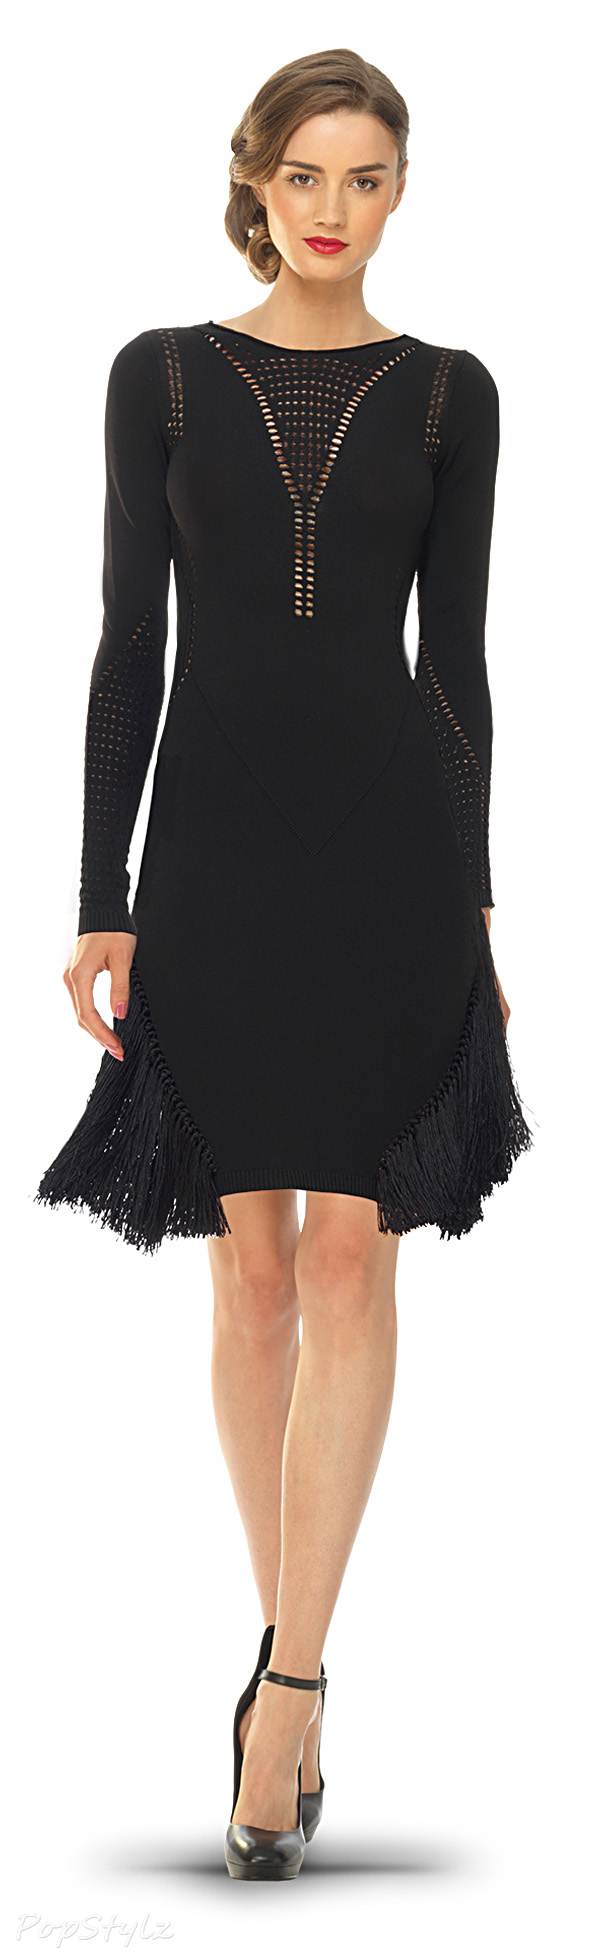 MAXSTUDIO Fringed Sweater Dress